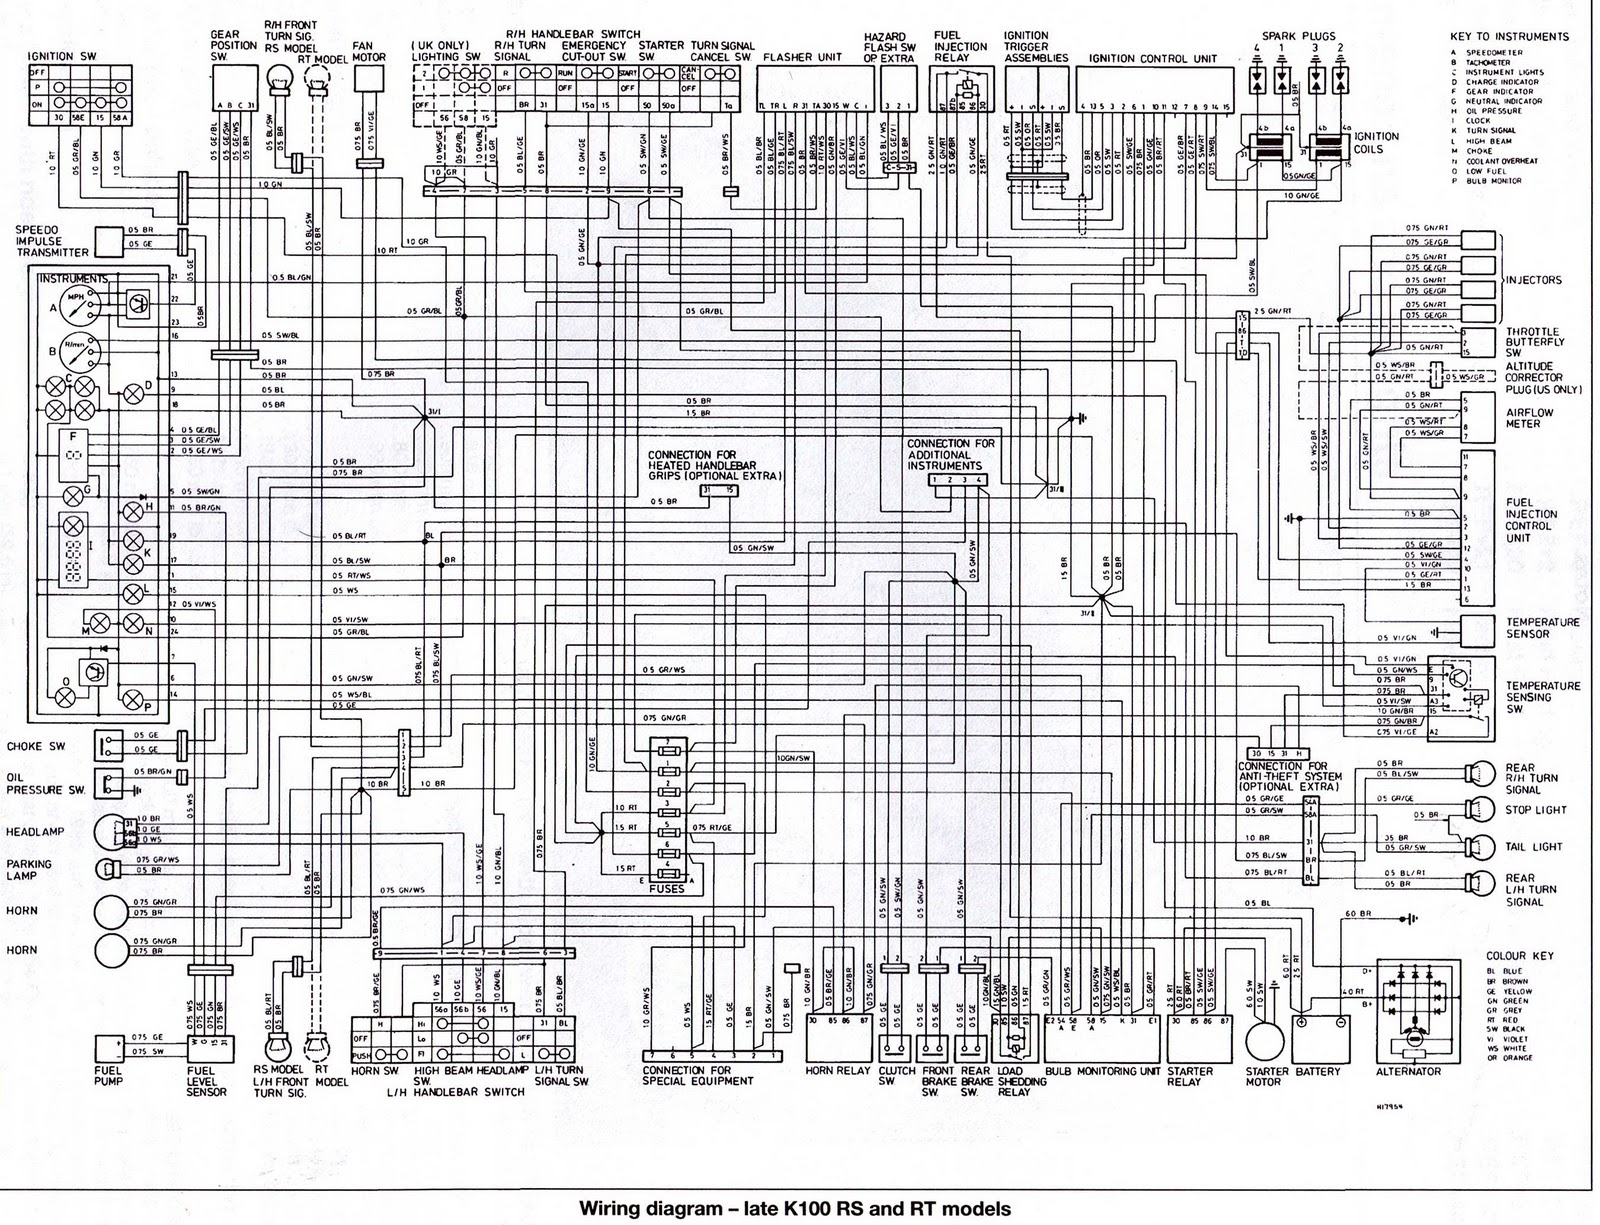 BMW+KR100RS RT+Wiring+Diagram bmw wiring diagram bmw wiring diagrams e39 \u2022 wiring diagrams j bmw e34 535i wiring diagram at cos-gaming.co